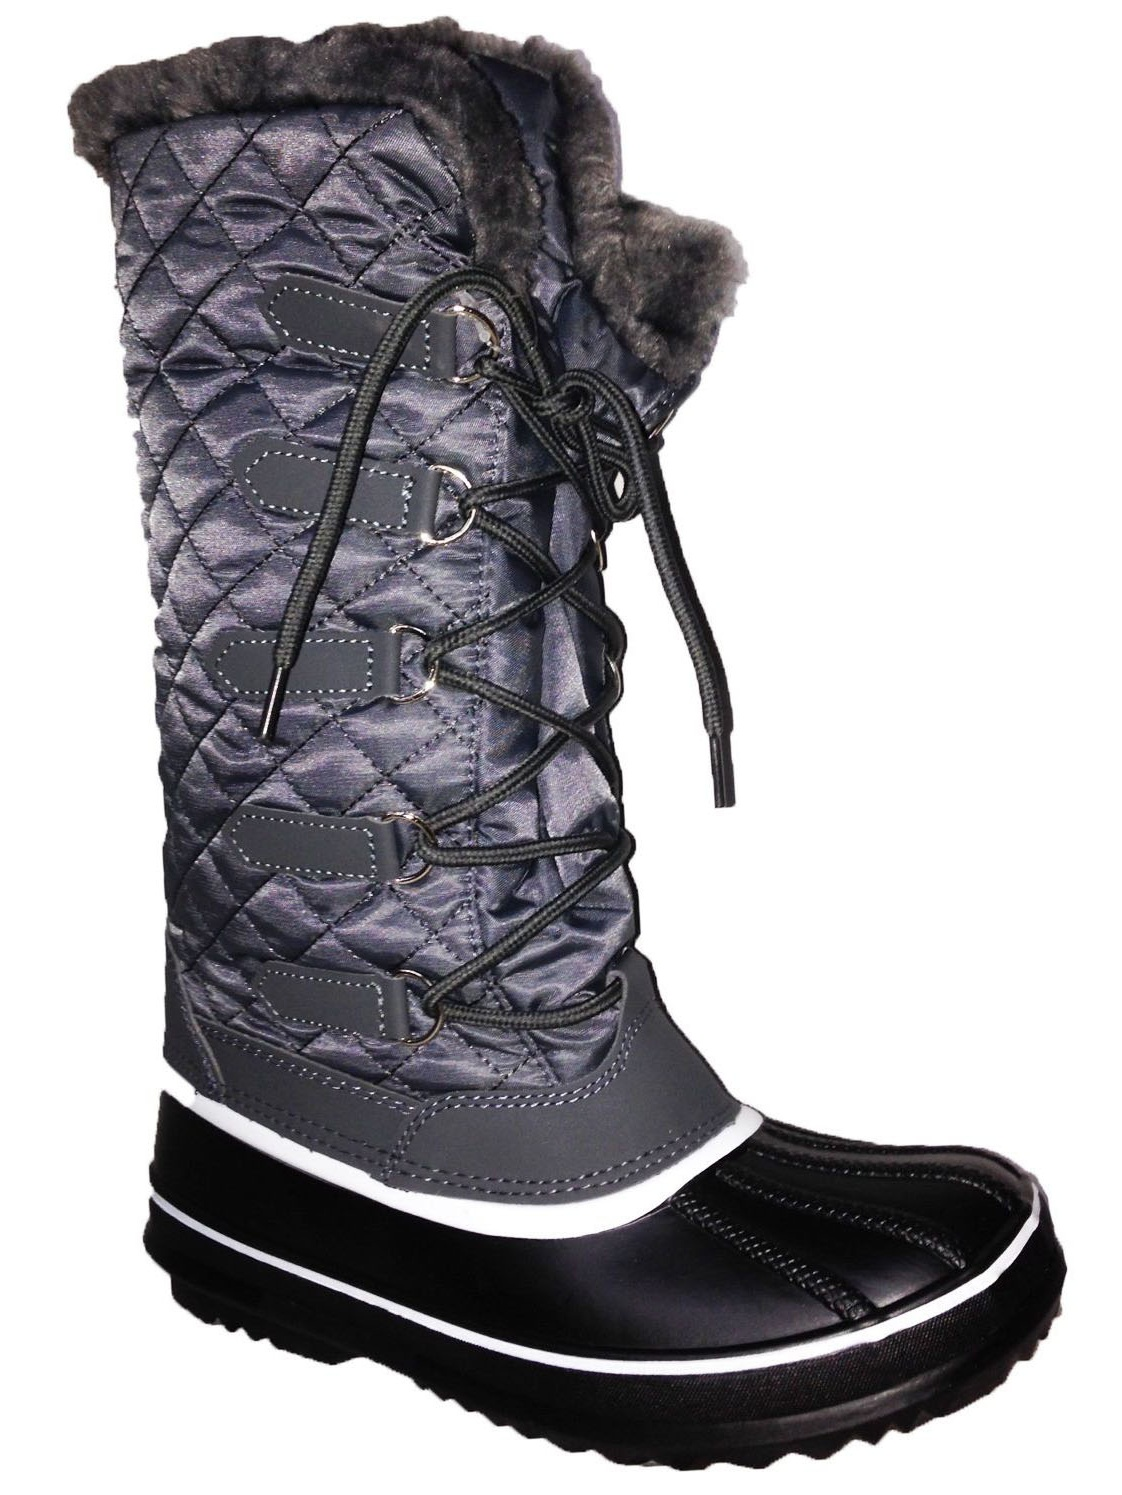 Anna Almeida Frozen02 Women Winter Cold Weather Snowboots Lace up Zipper